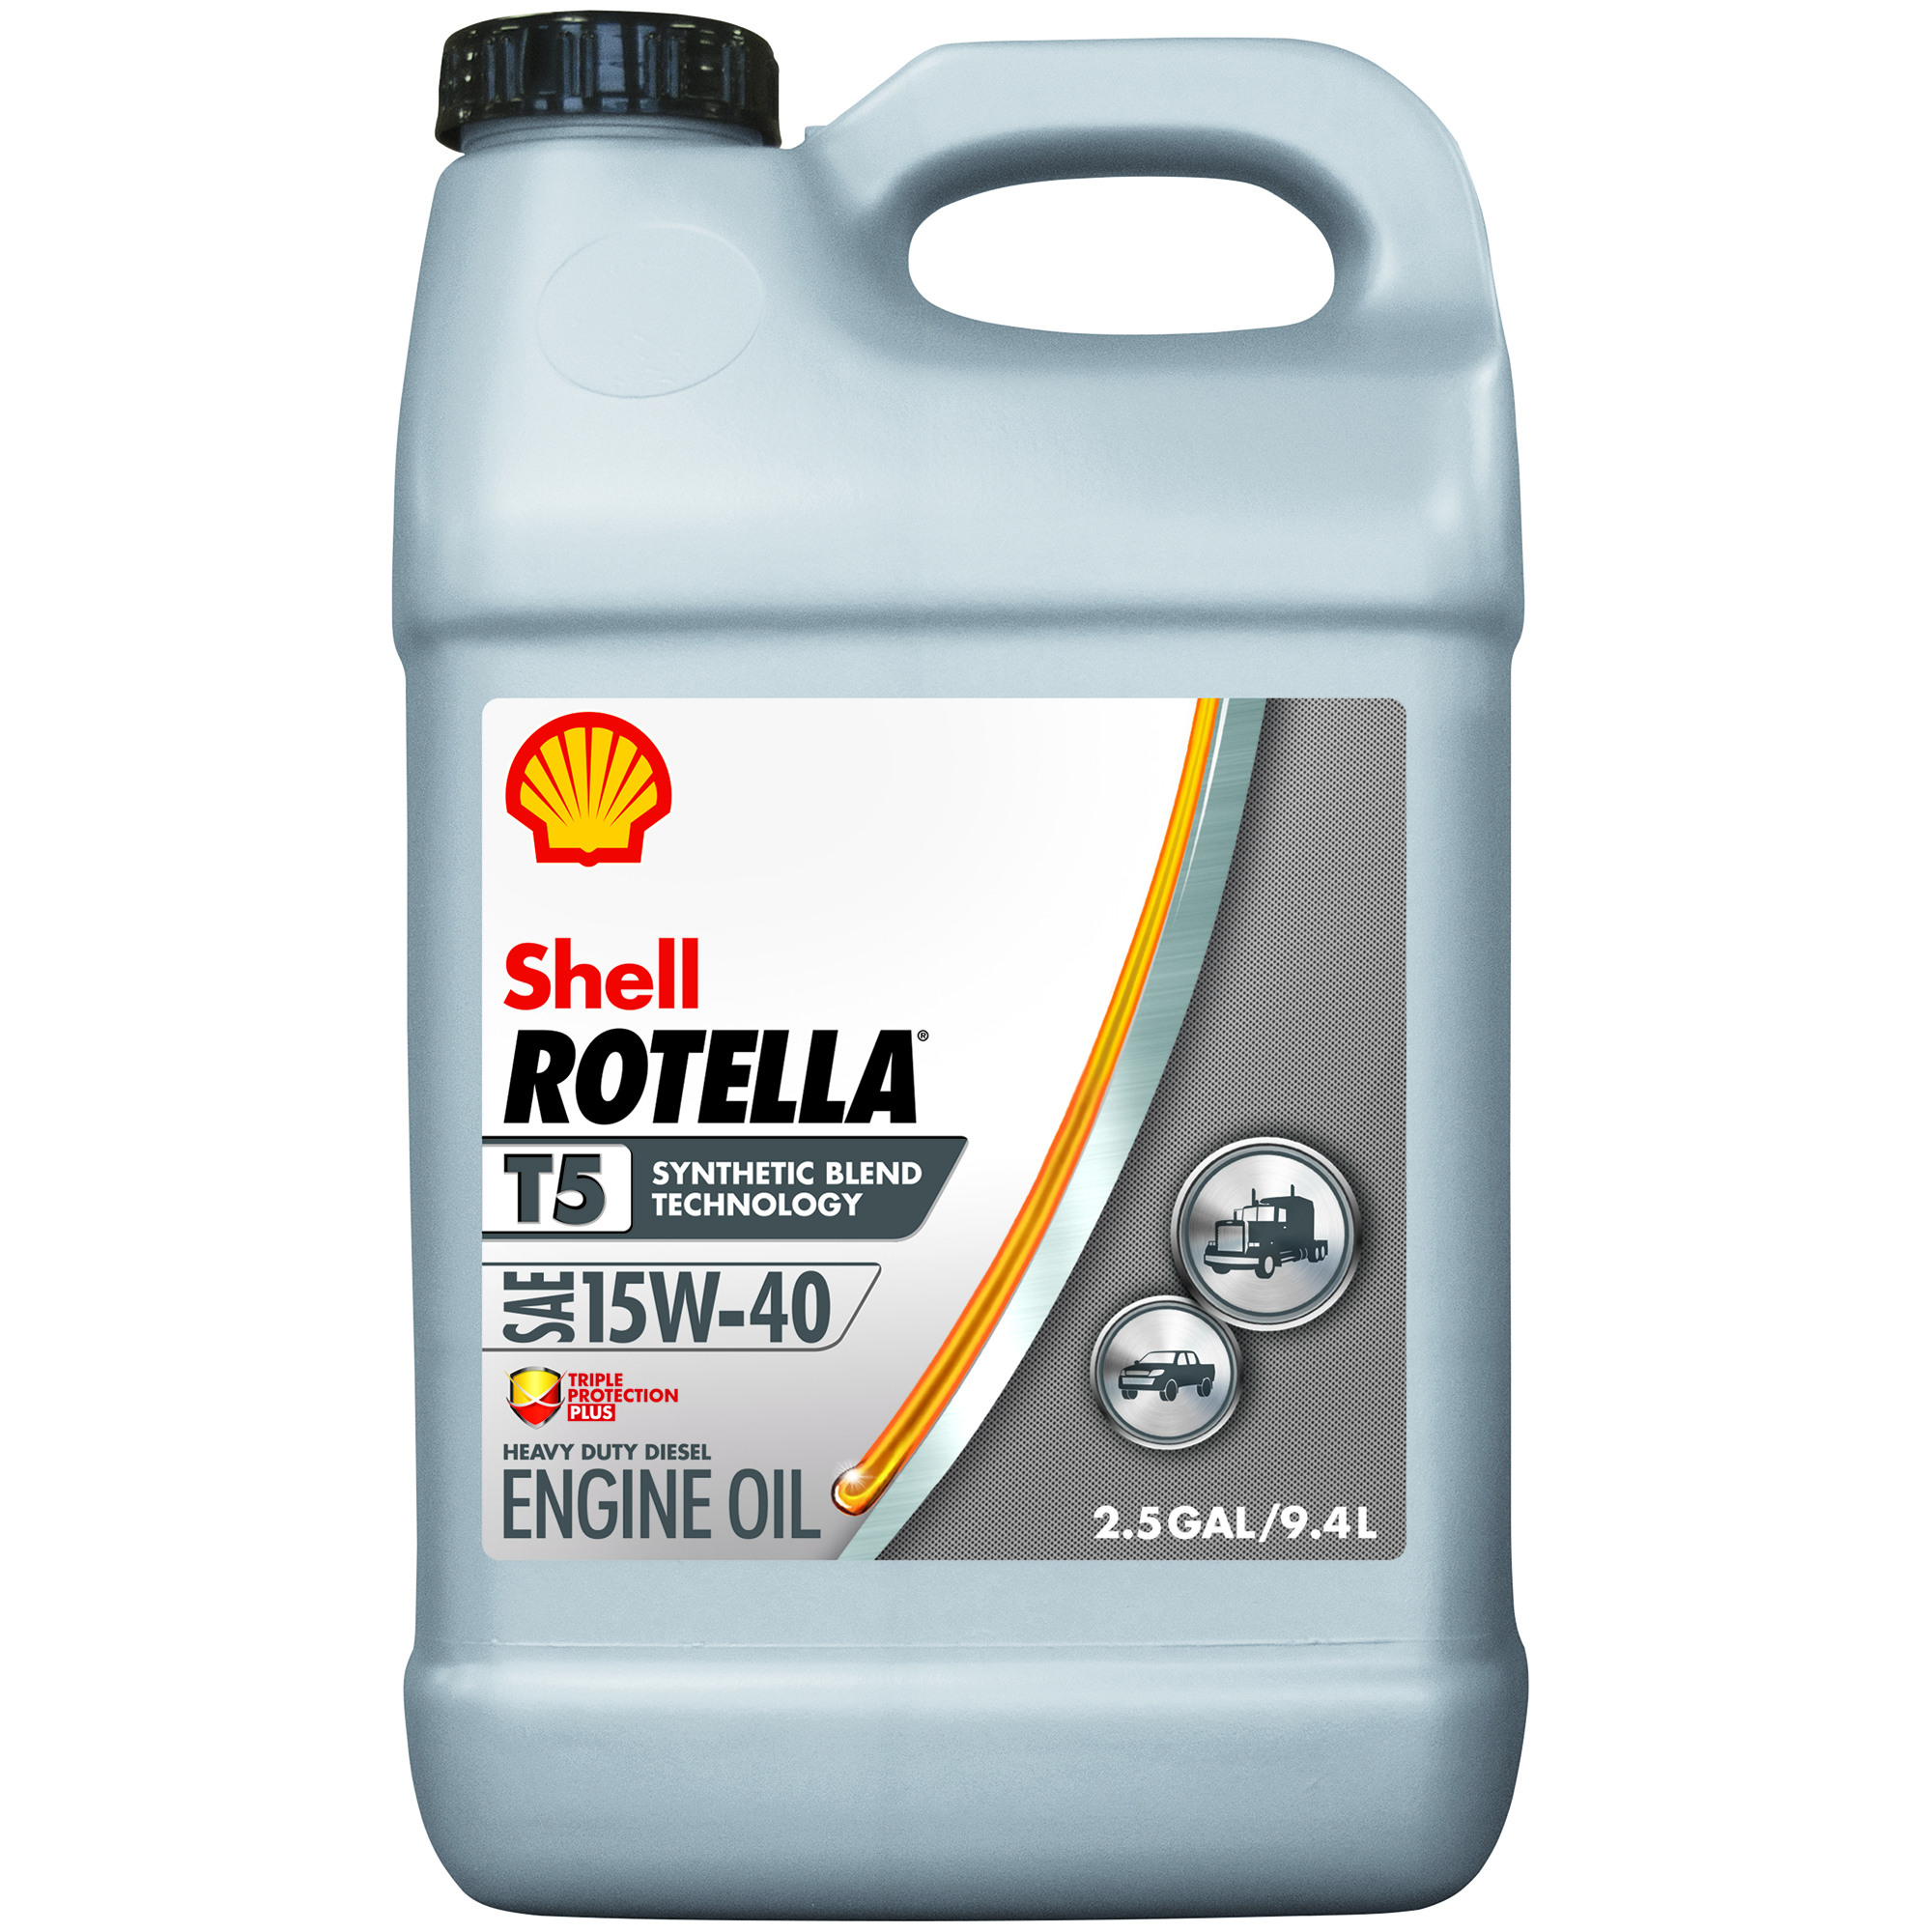 Shell Rotella T5 5W-40 Synthetic Blend Heavy Duty Diesel Engine Oil, 2.5 gal